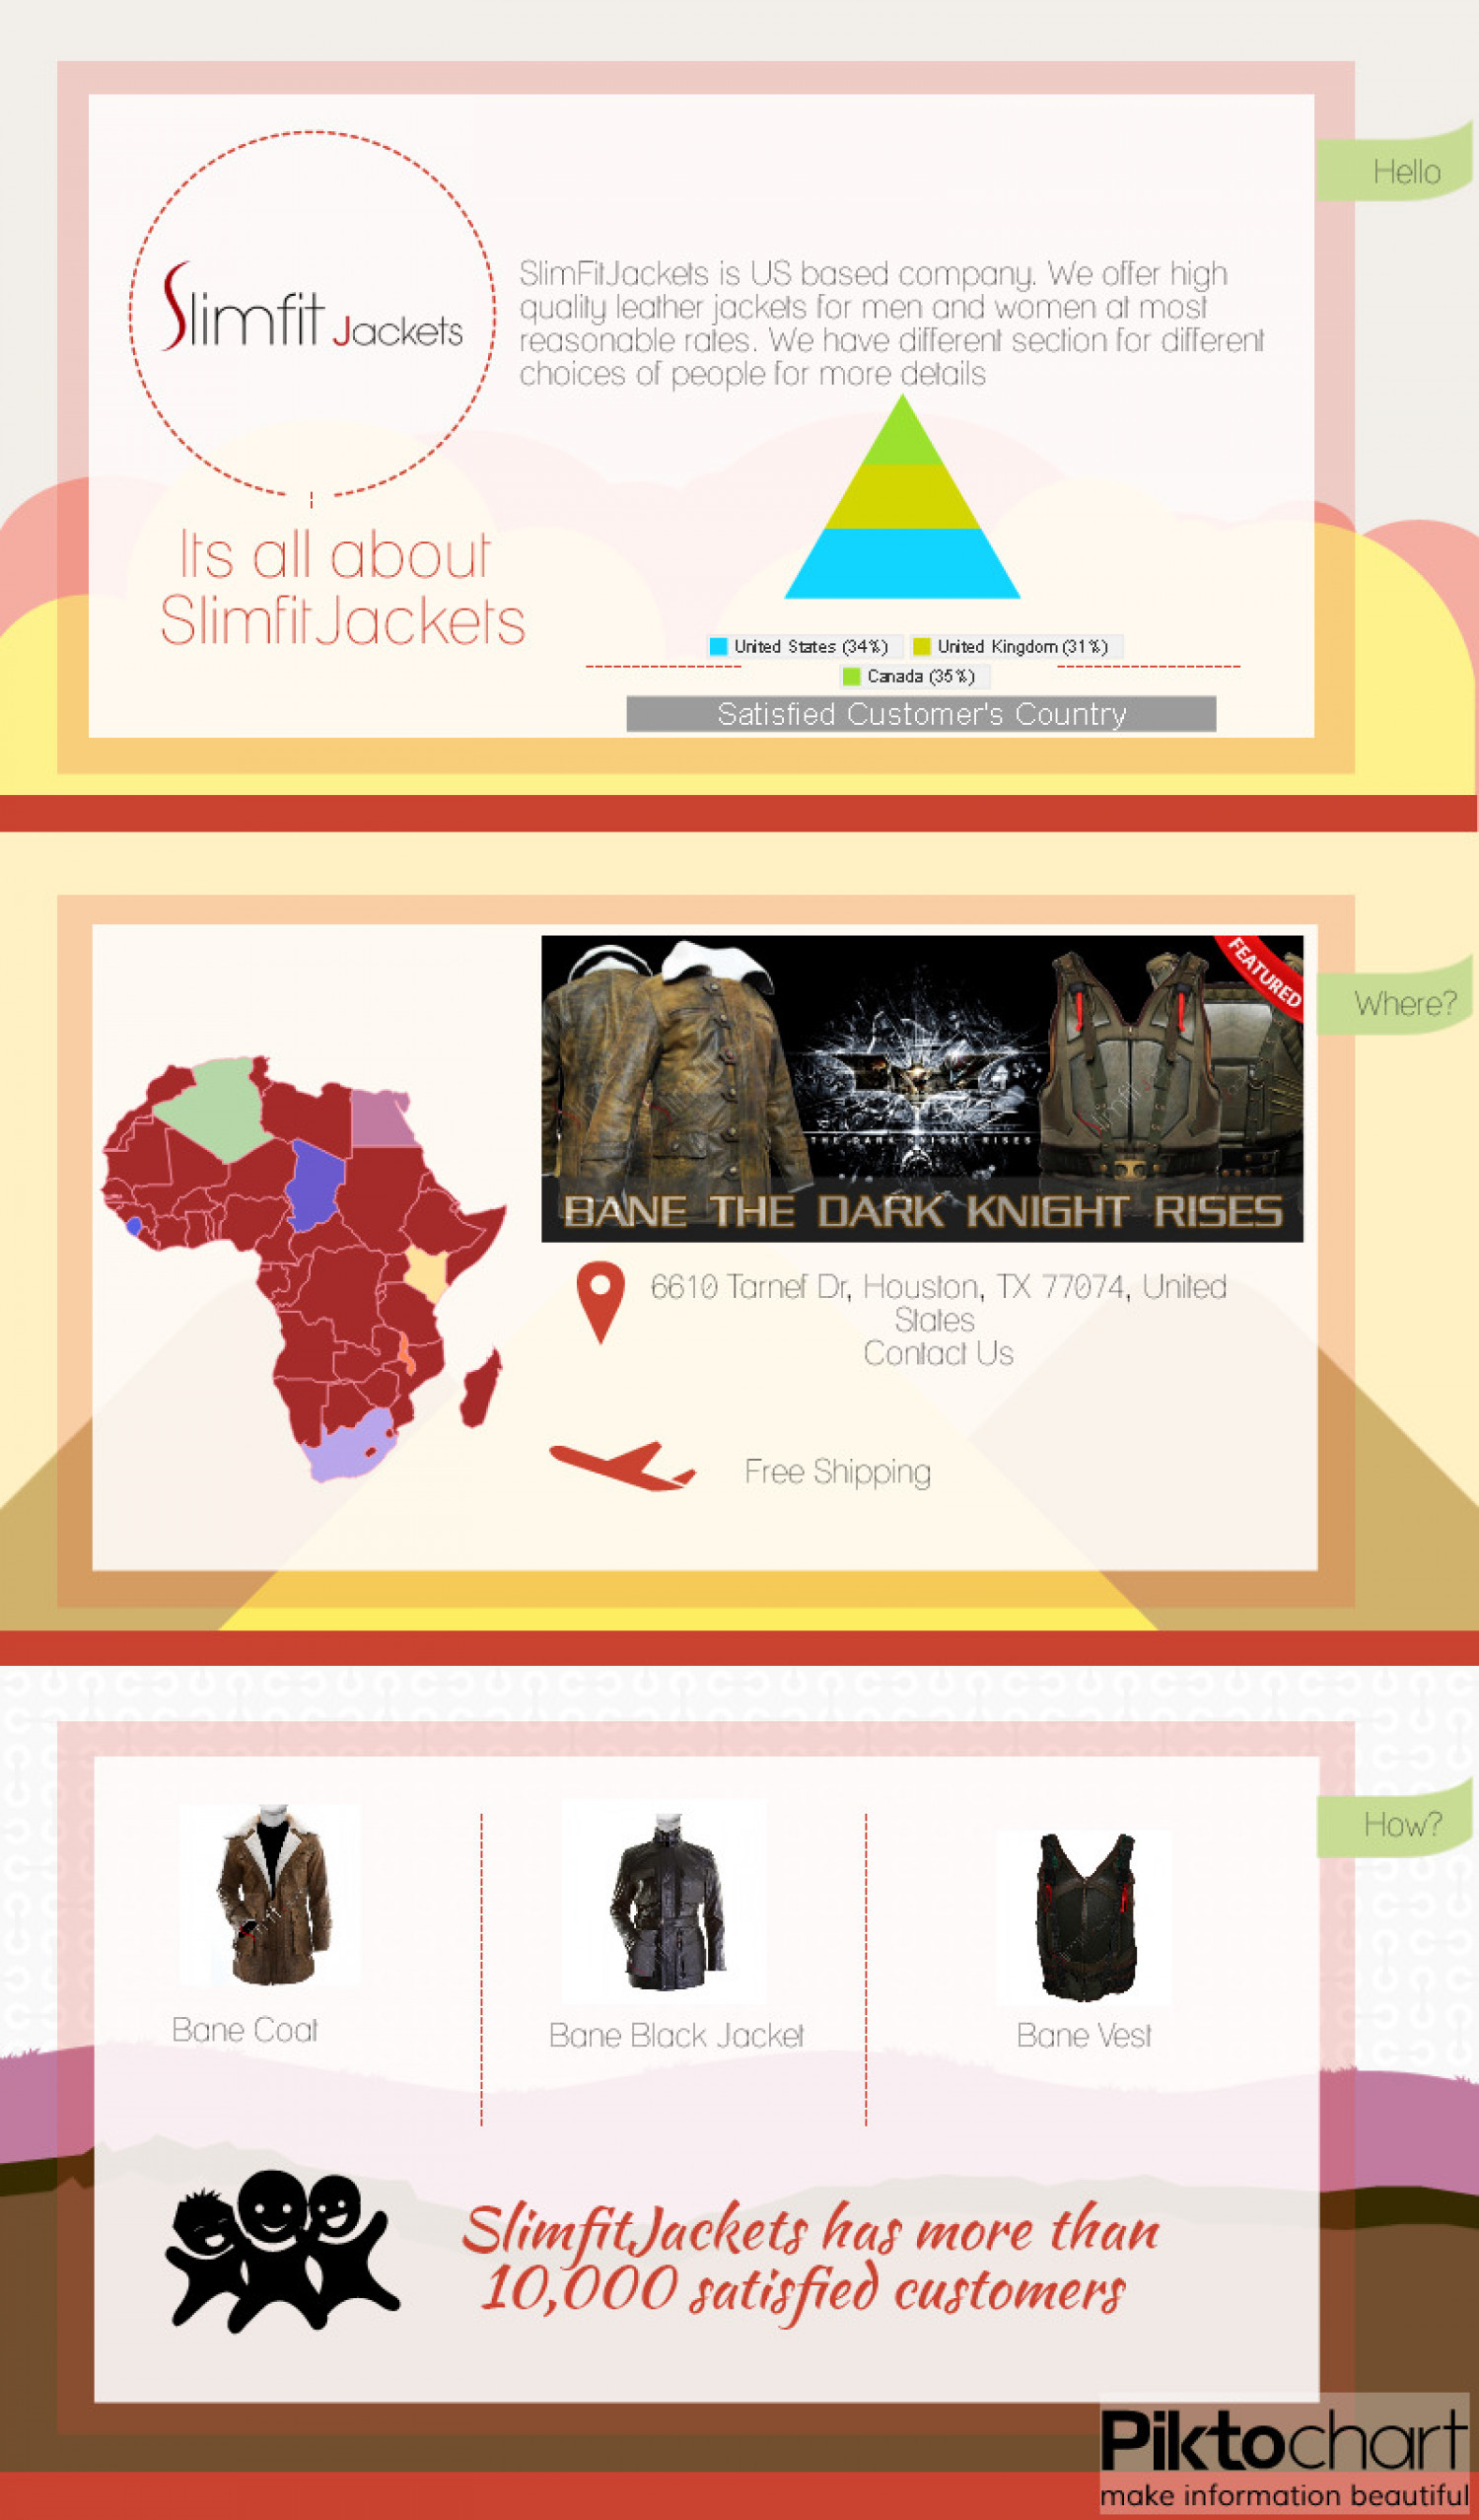 The Dark Knight Rises Bane Coat/Costume /Vest Infographic